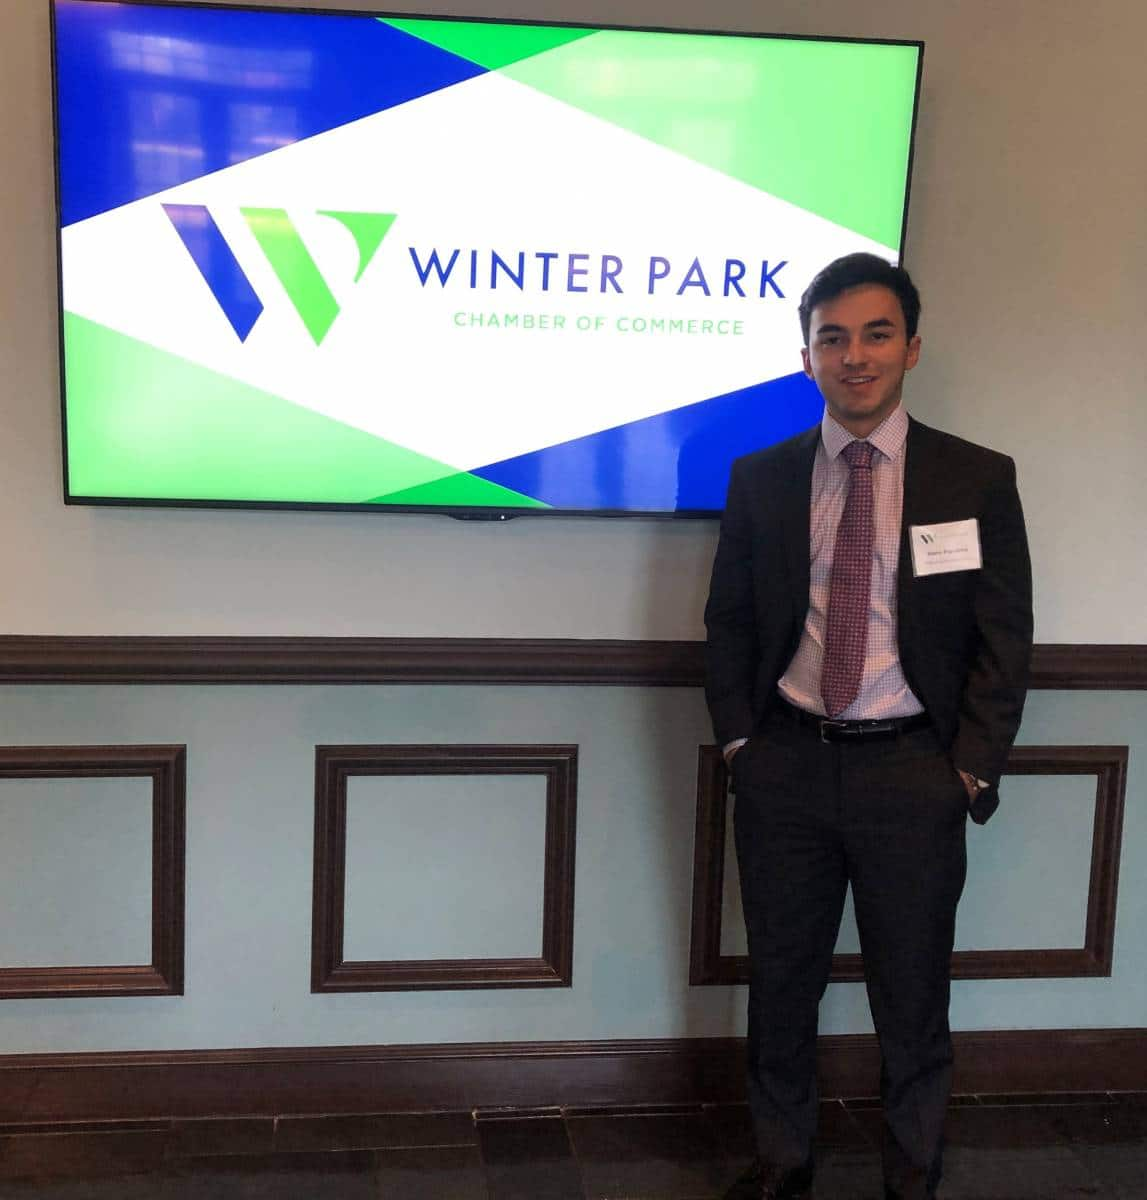 Gabriel Figueroa stands in front of the Winter Park Chamber of Commerce logo